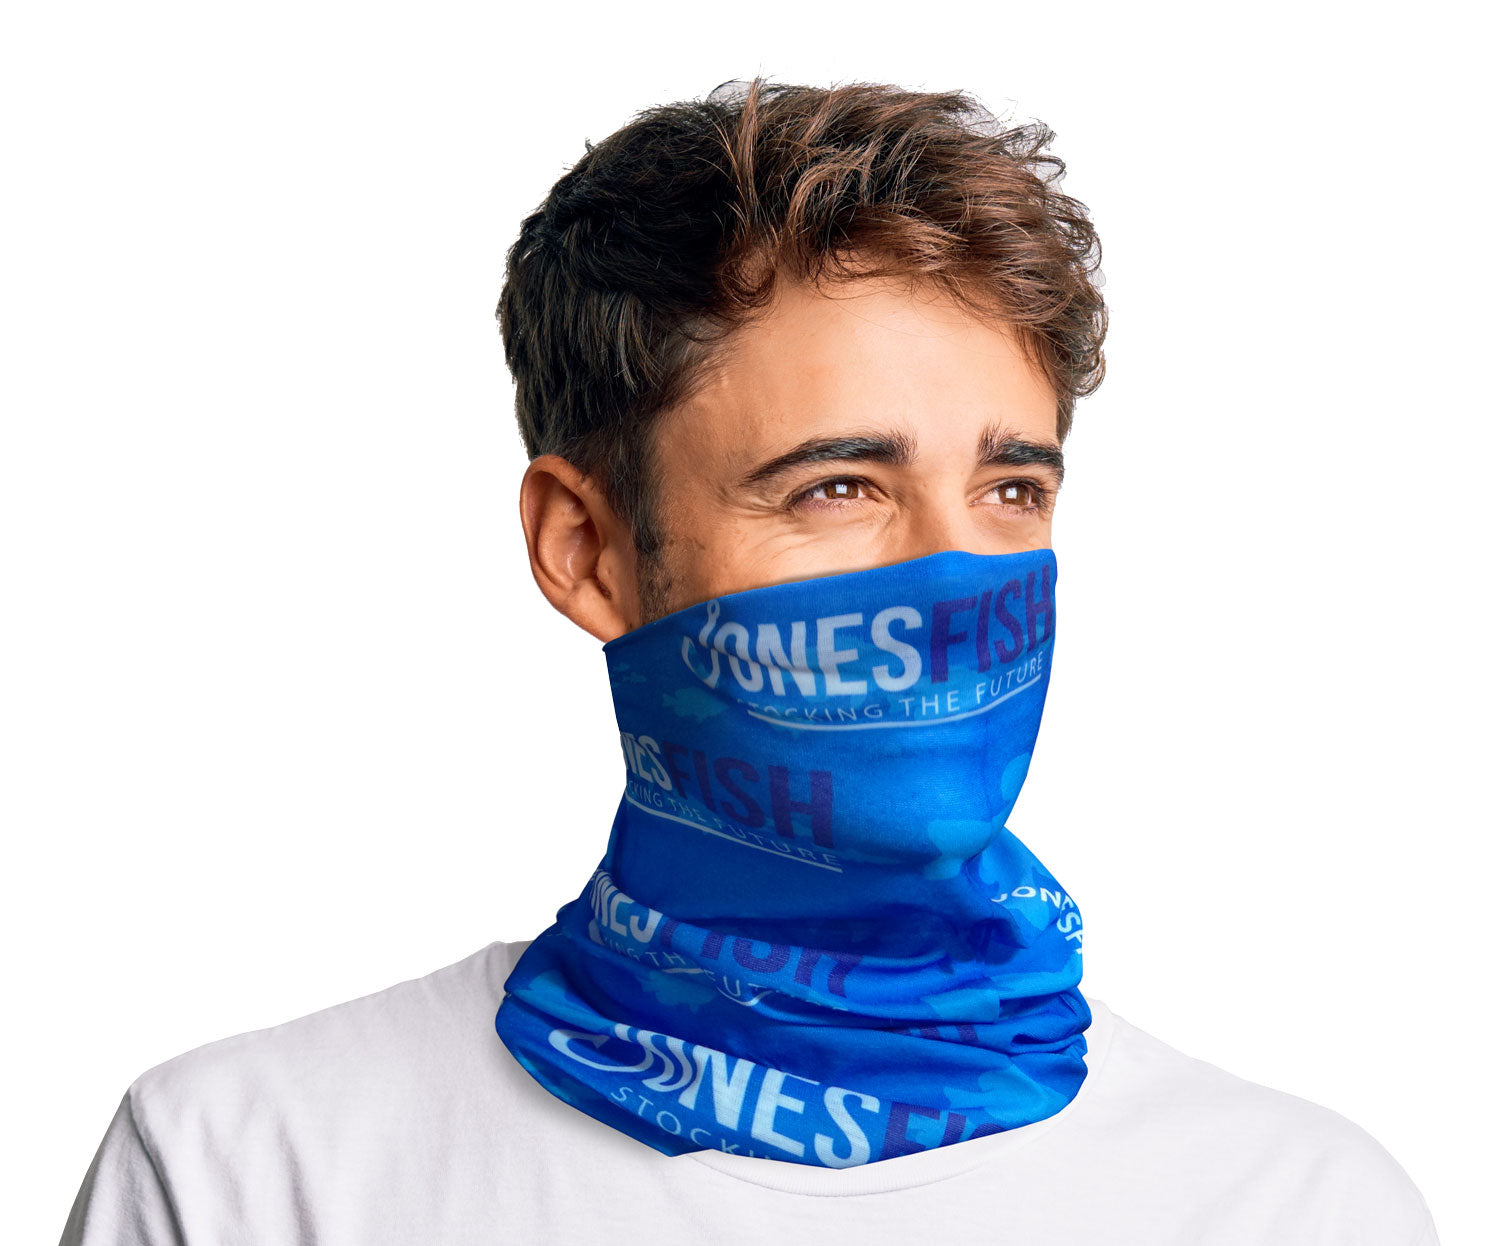 Jones Fish Neck Gaiter